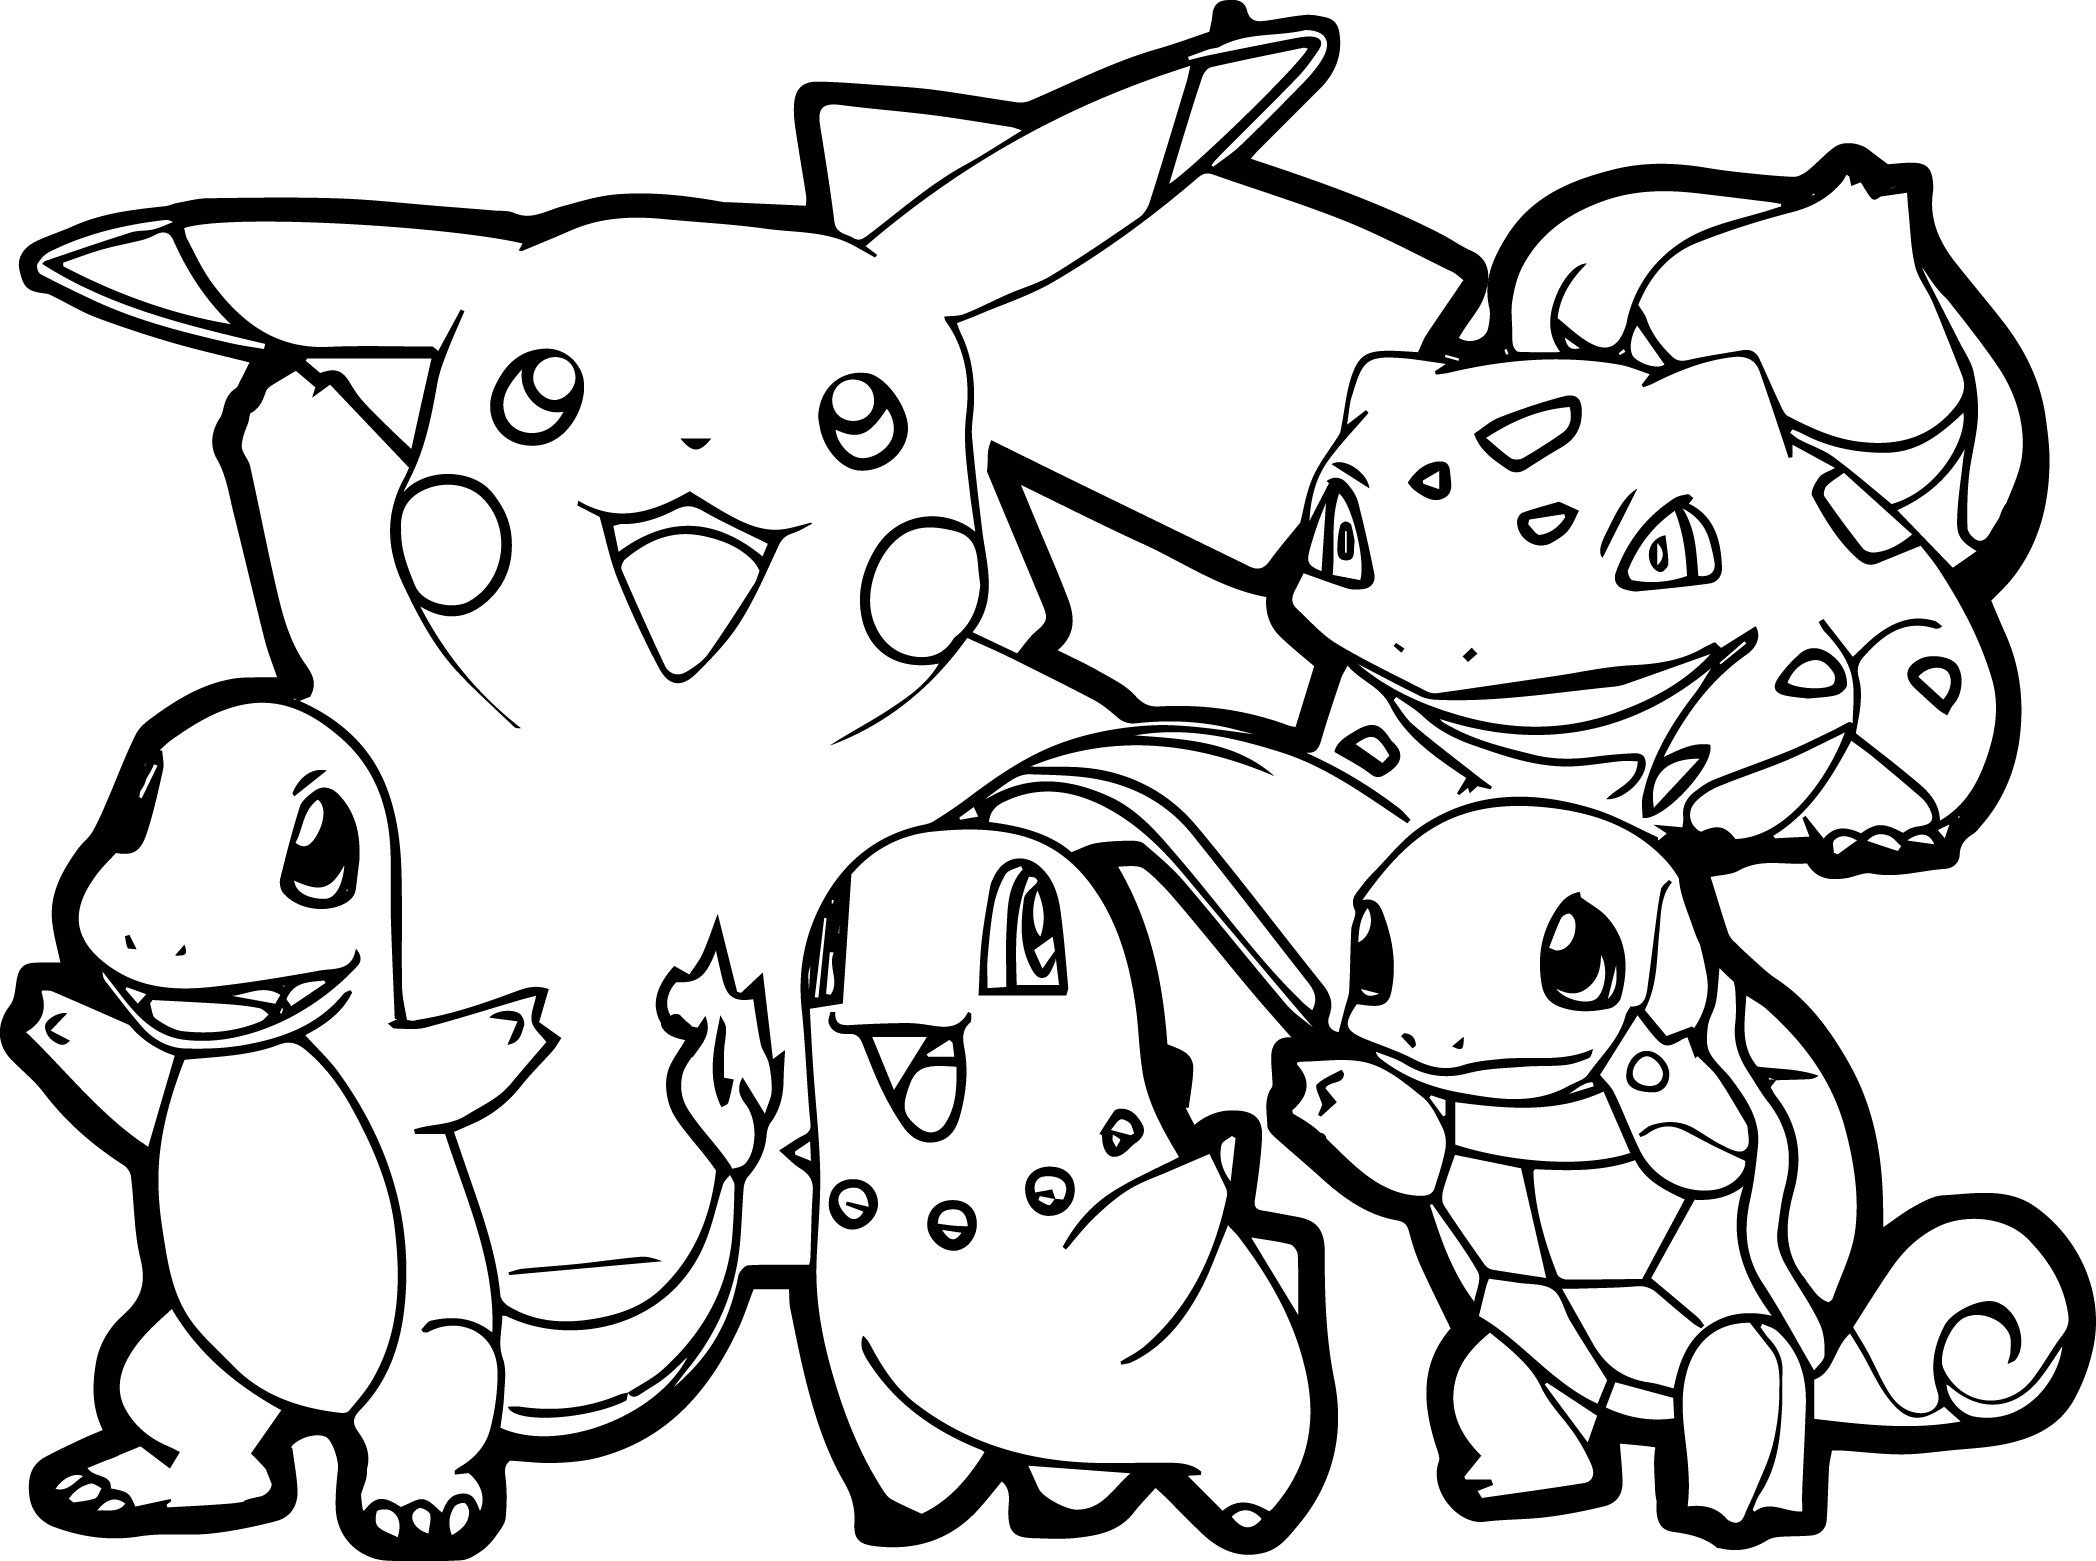 photo to coloring page - all pokemon coloring pages